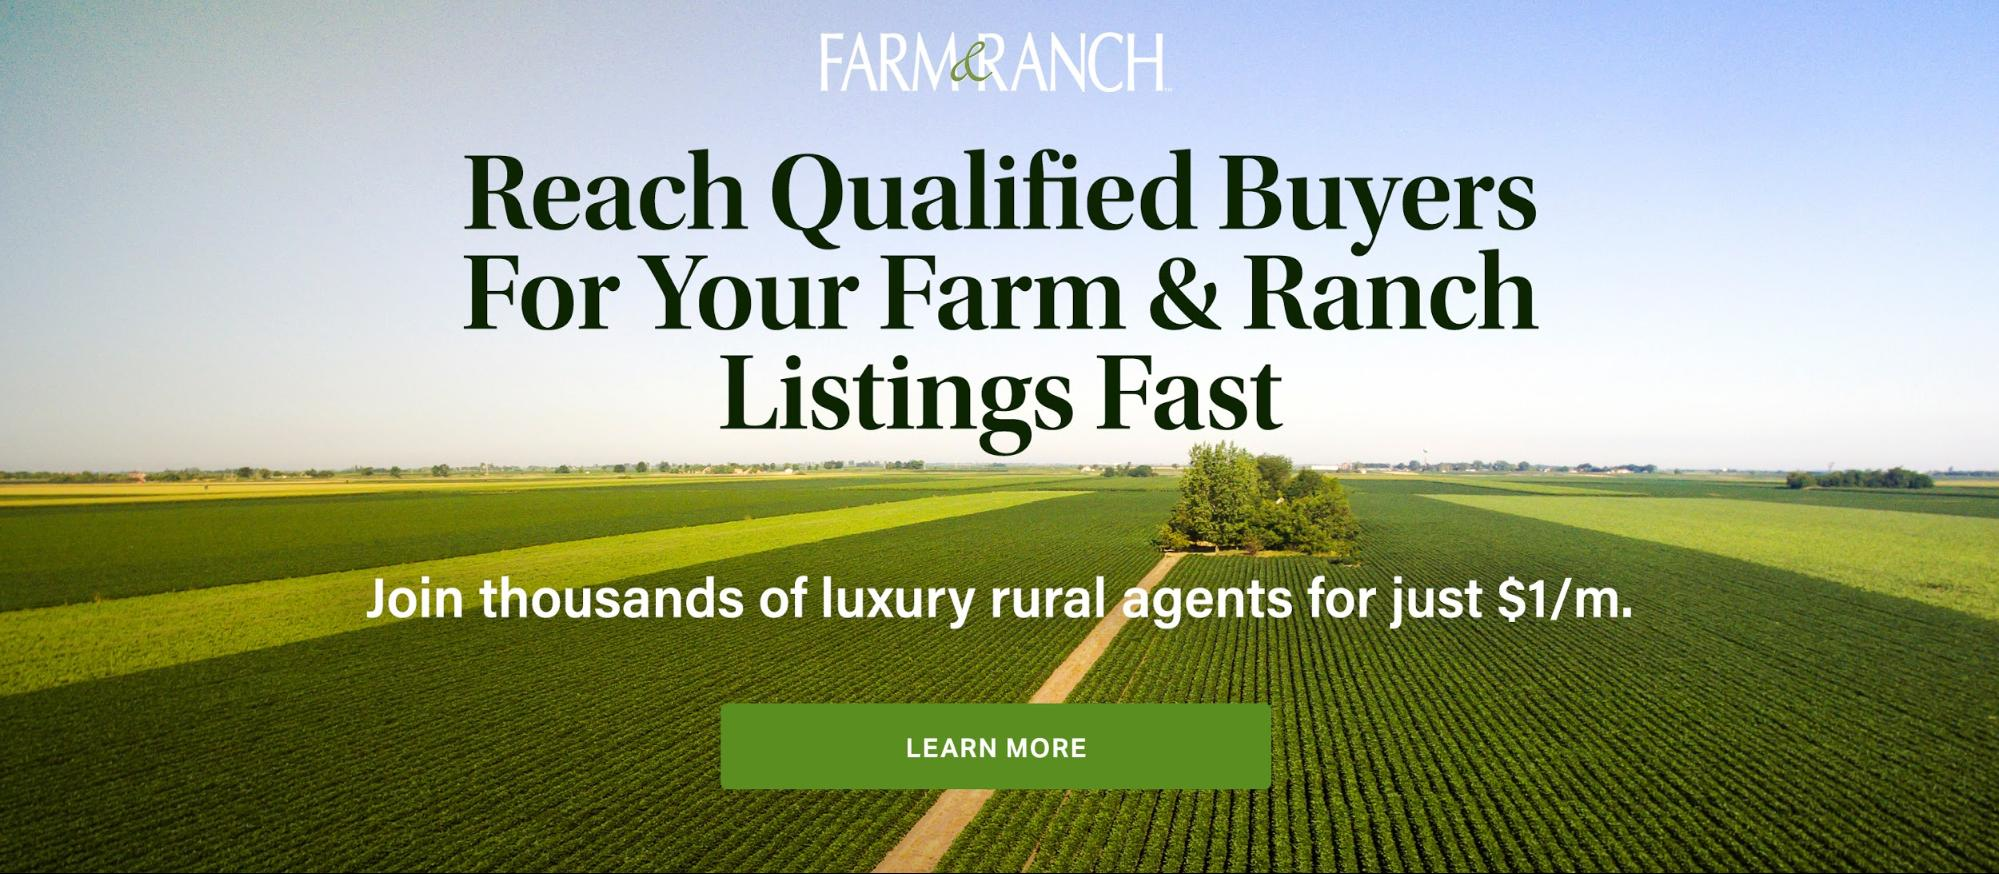 Reach Qualified Buyers For Your Farm & Ranch Listing Fast